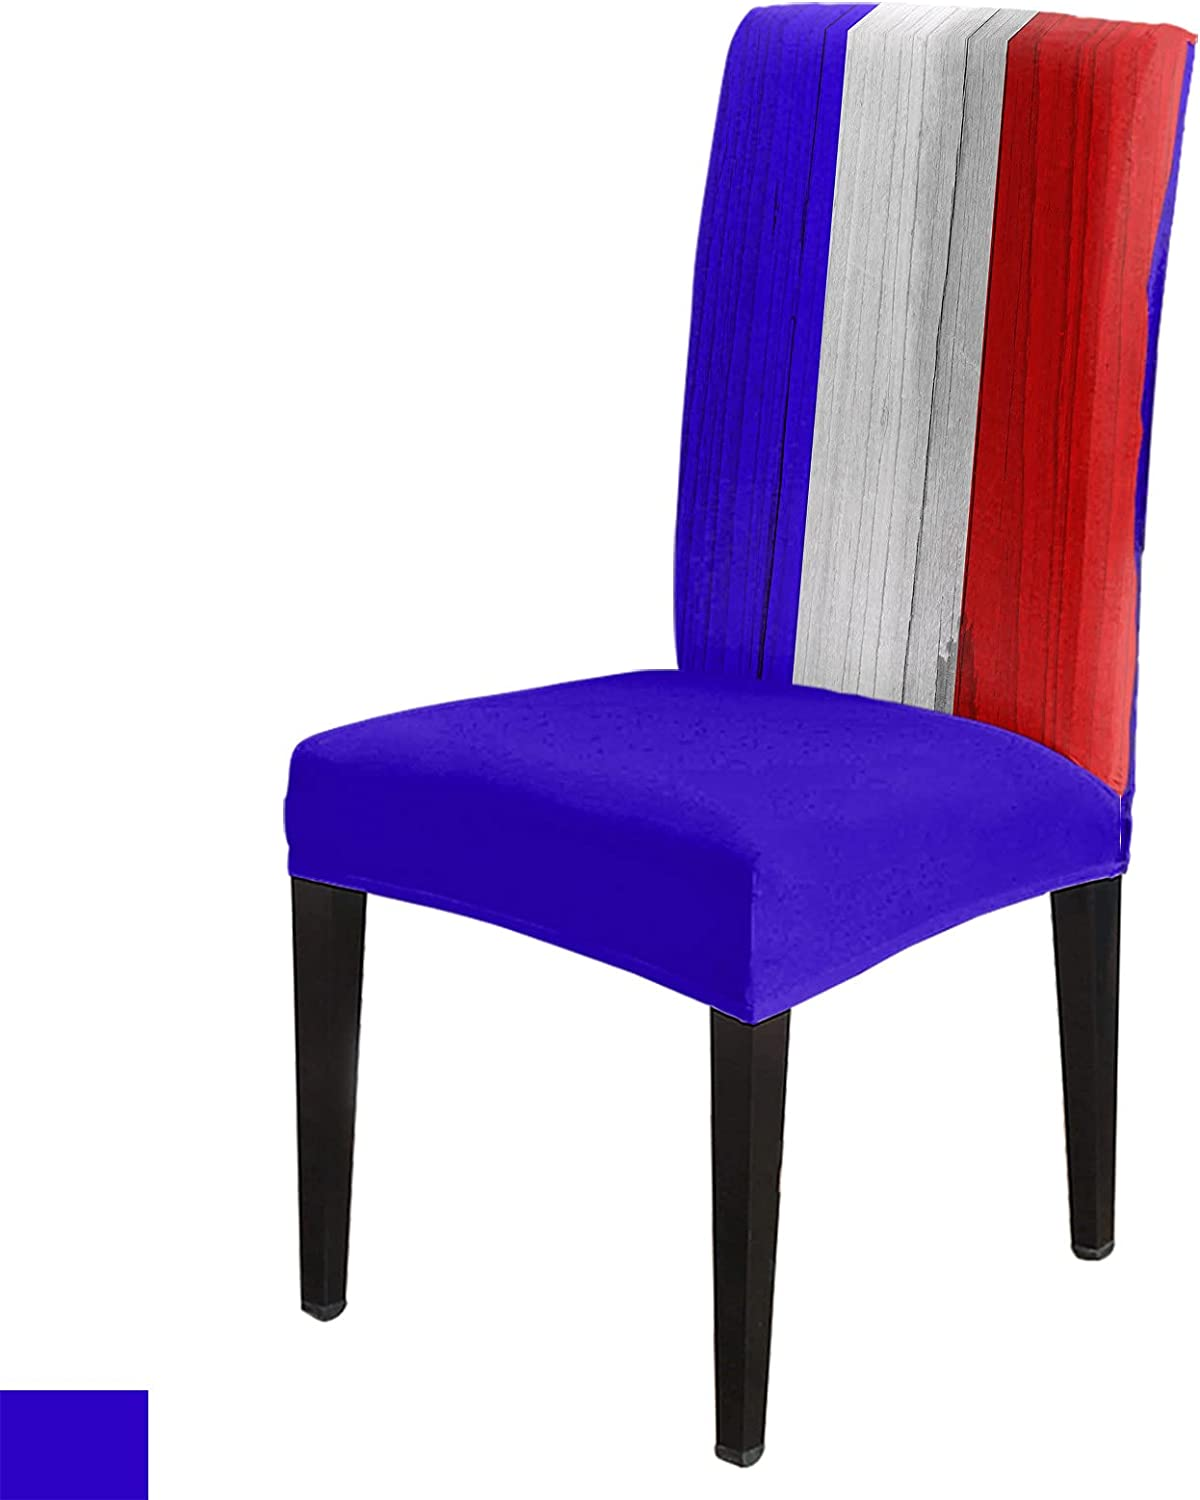 8 Per Set French National Ranking TOP9 Day Red White Blue Cover Chair Stripes Limited time trial price